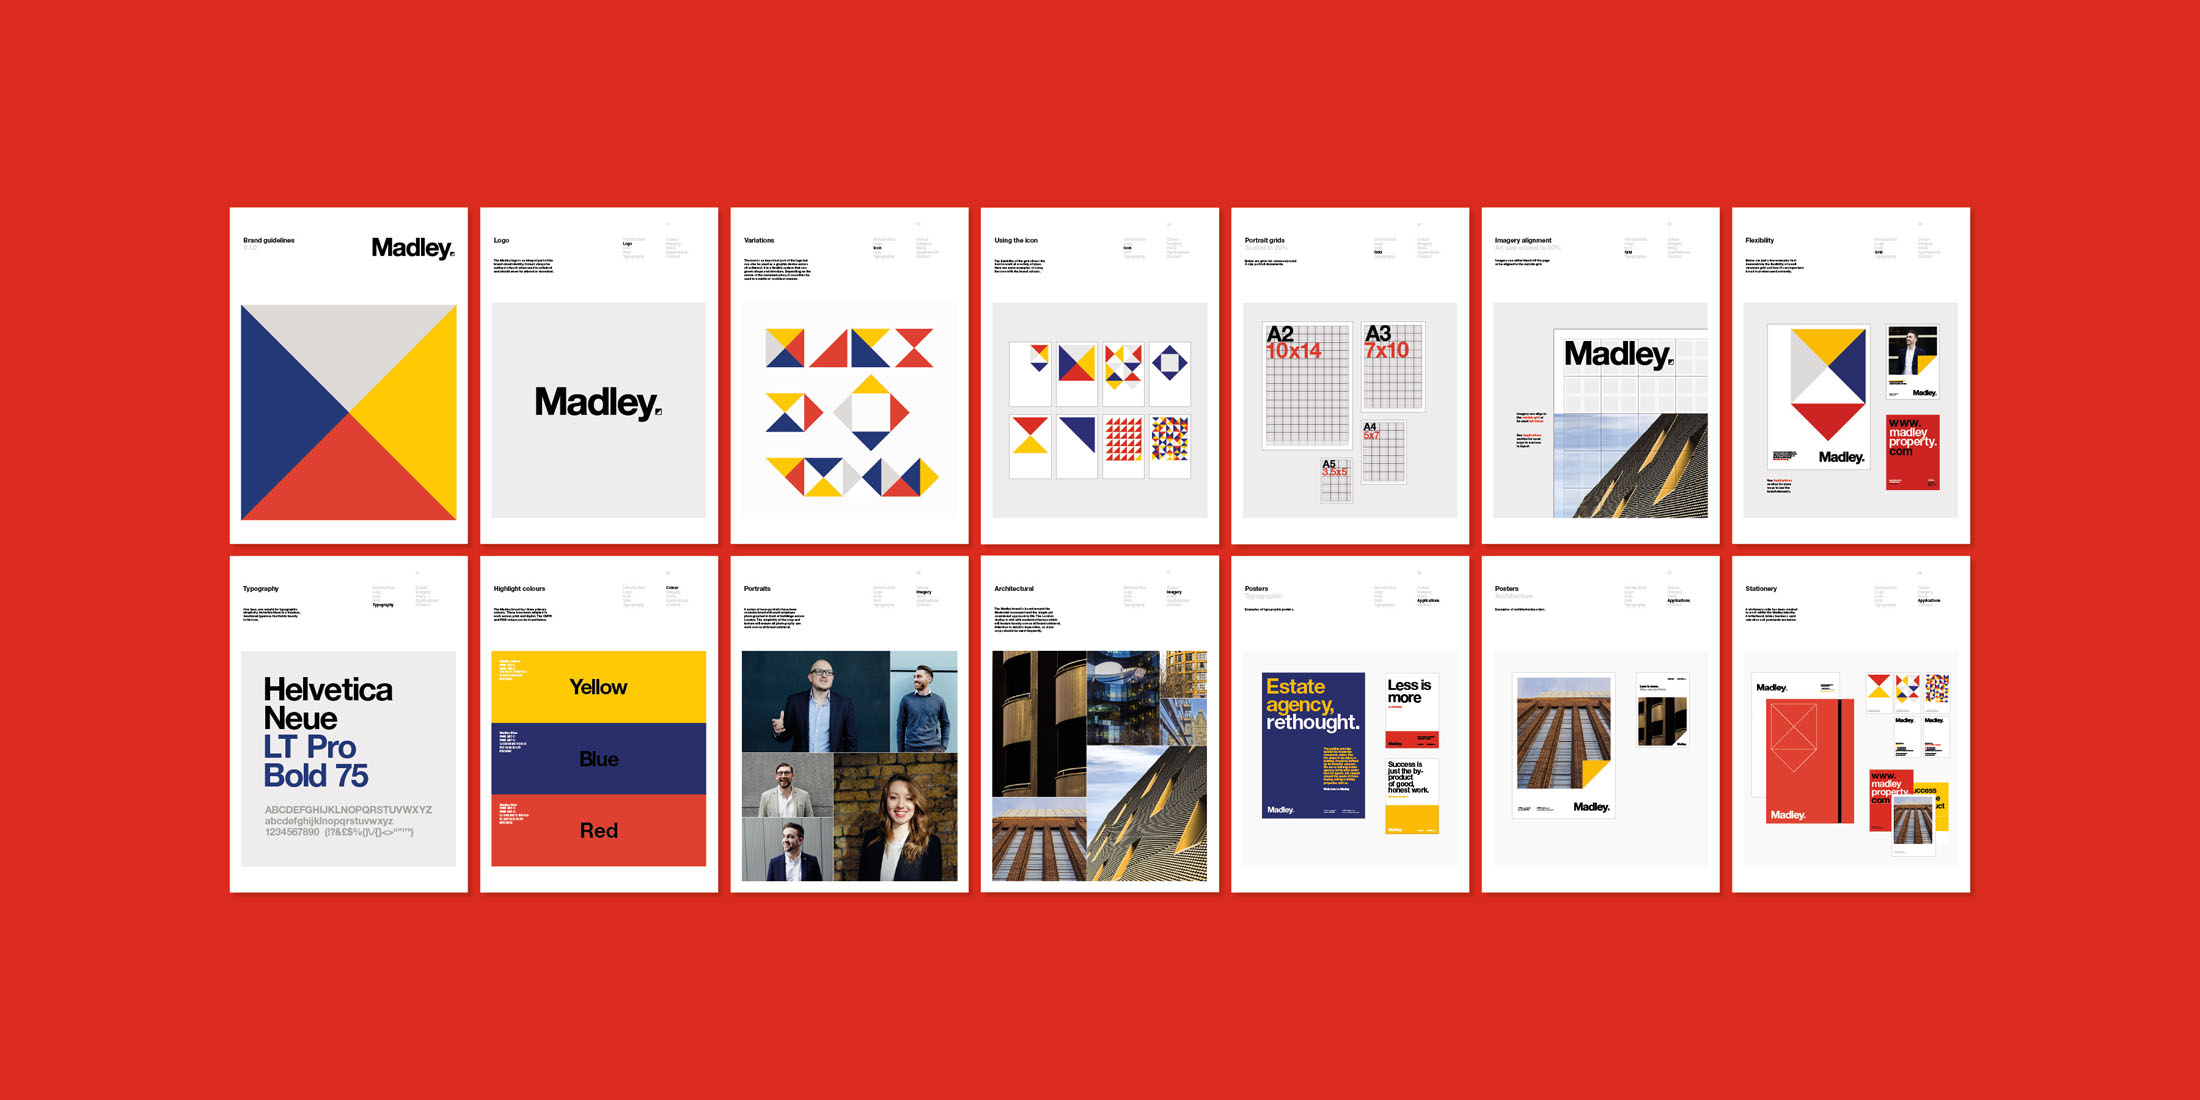 Madley brand guidelines